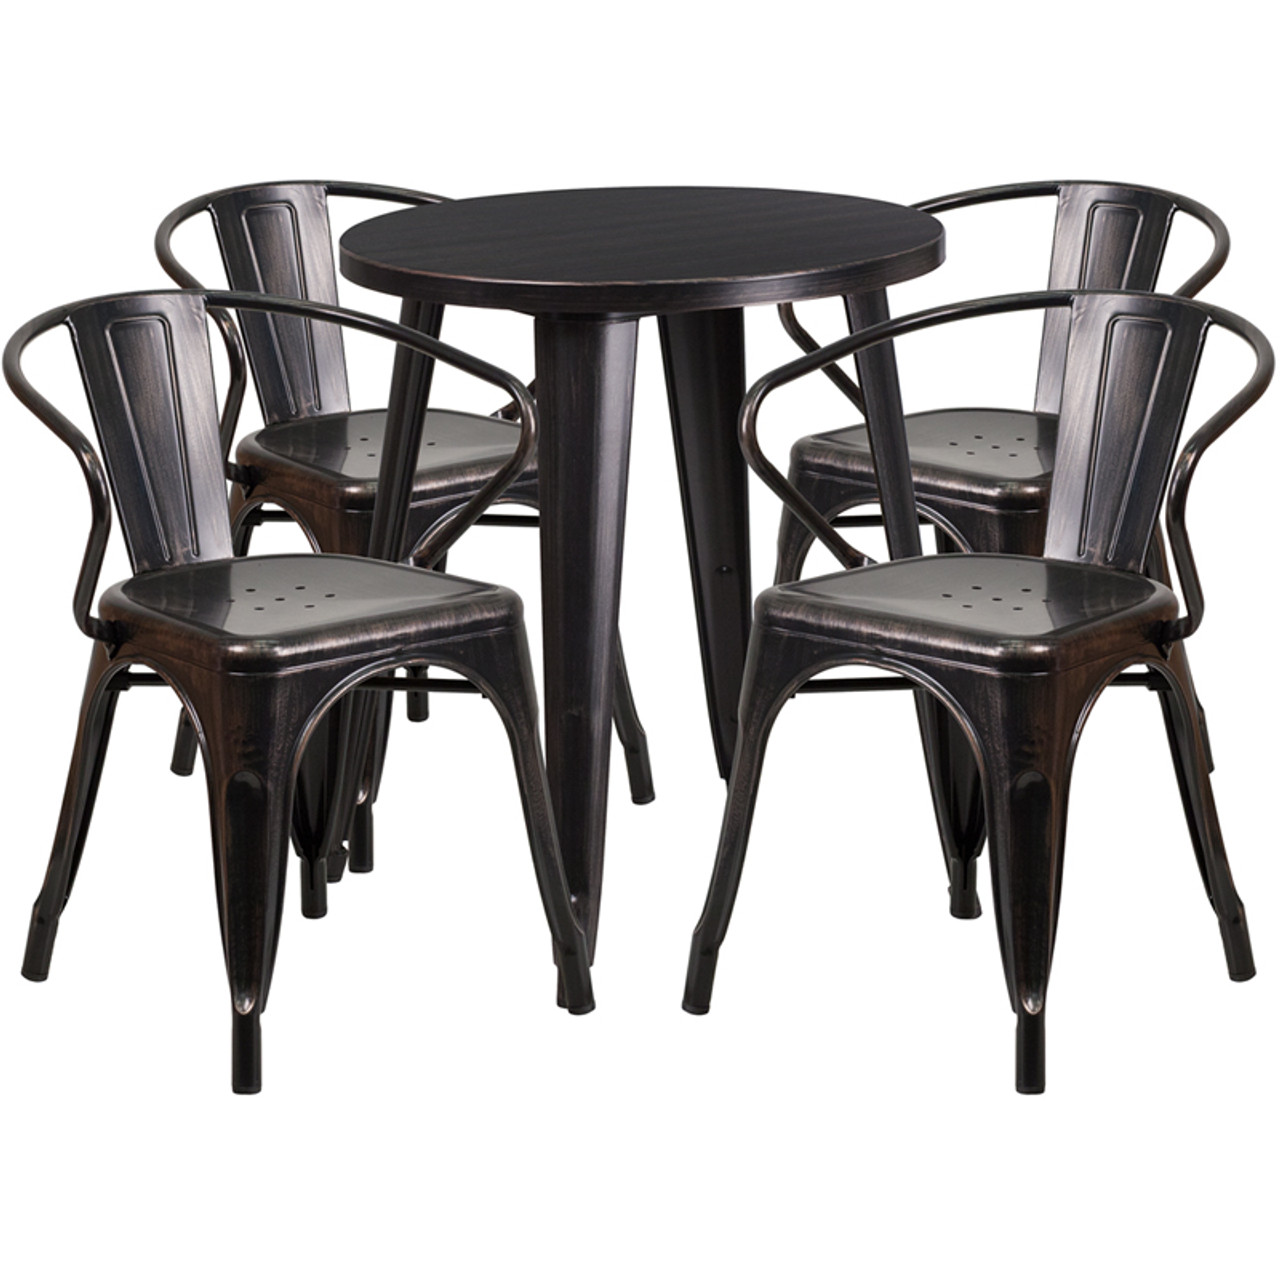 Indoor Outdoor Cafe Metal 5 Piece Set 24 Round Table With 4 Arm